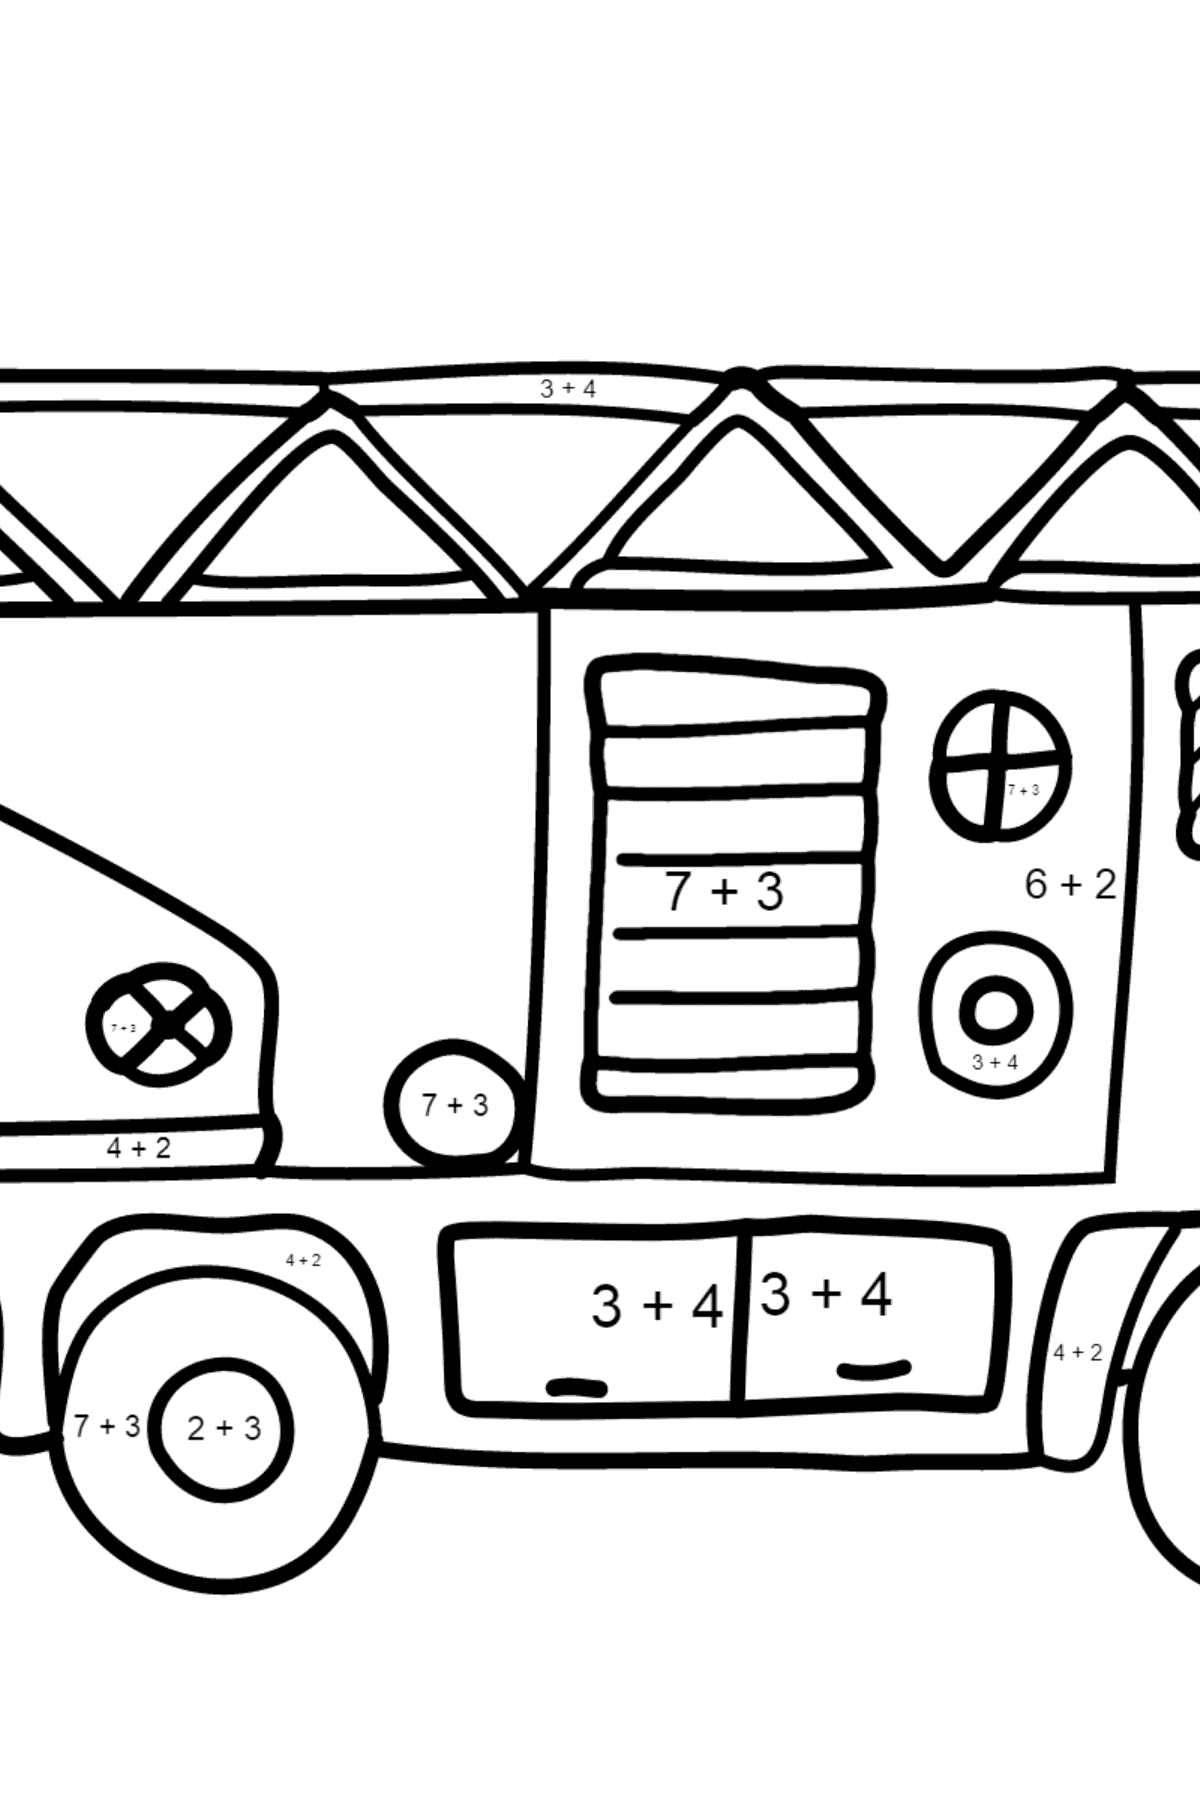 Coloring Page - A Fire Truck for Kids  - Color by Number Addition